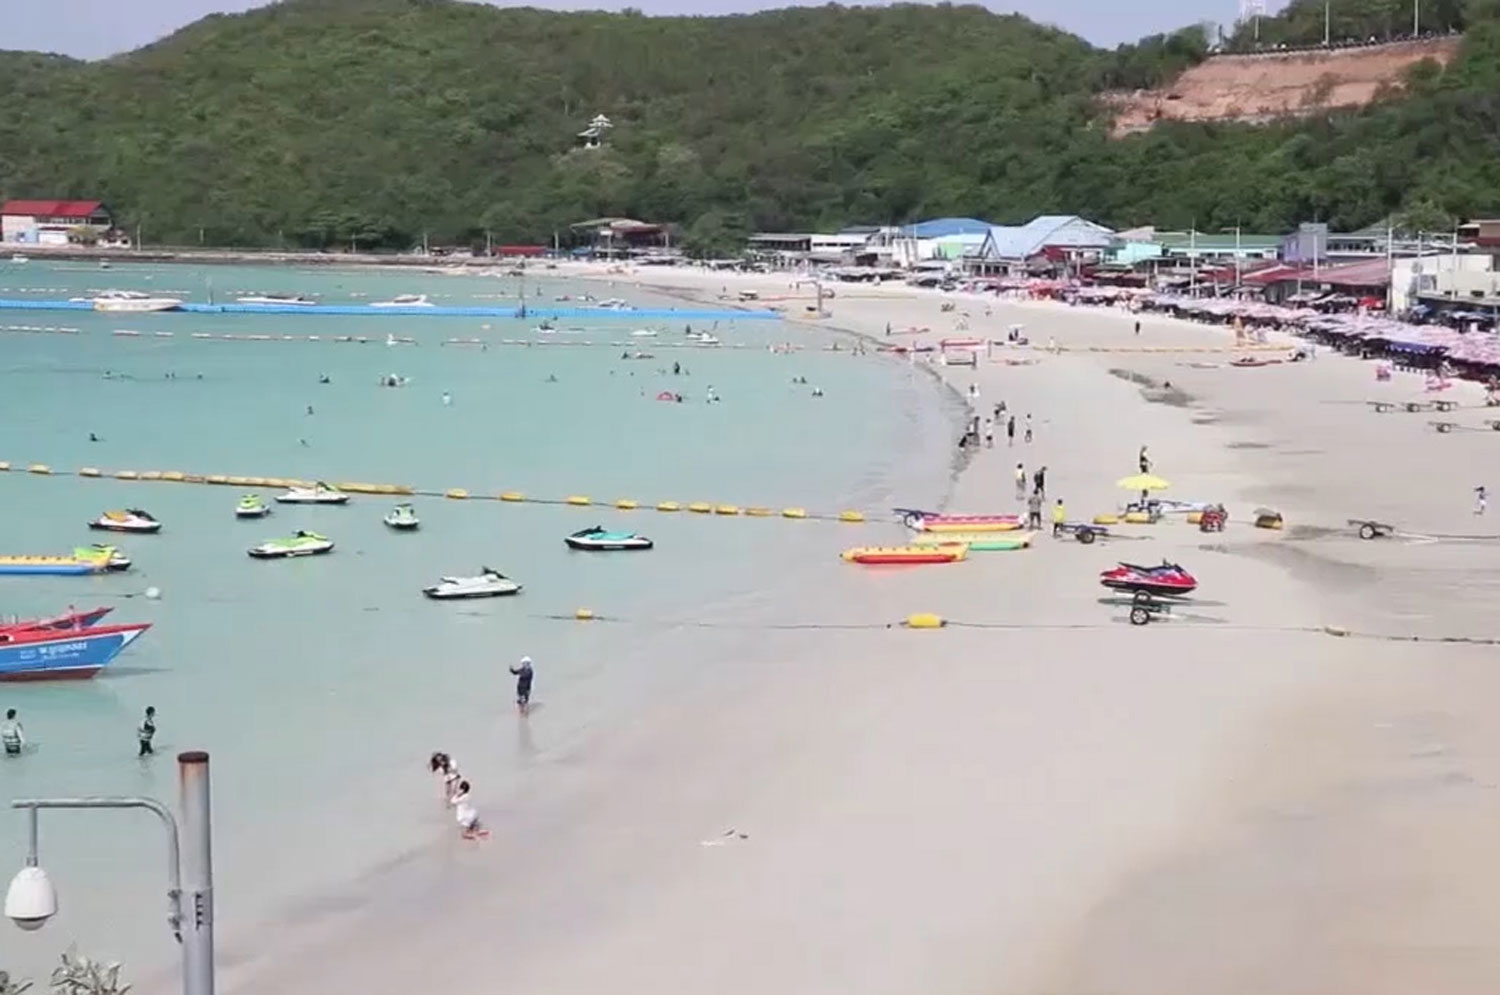 The beach at Koh Lan has not been very crowded on the first few days of eased travel restrictions. (Photo: Chaiyot Pupattanapong)